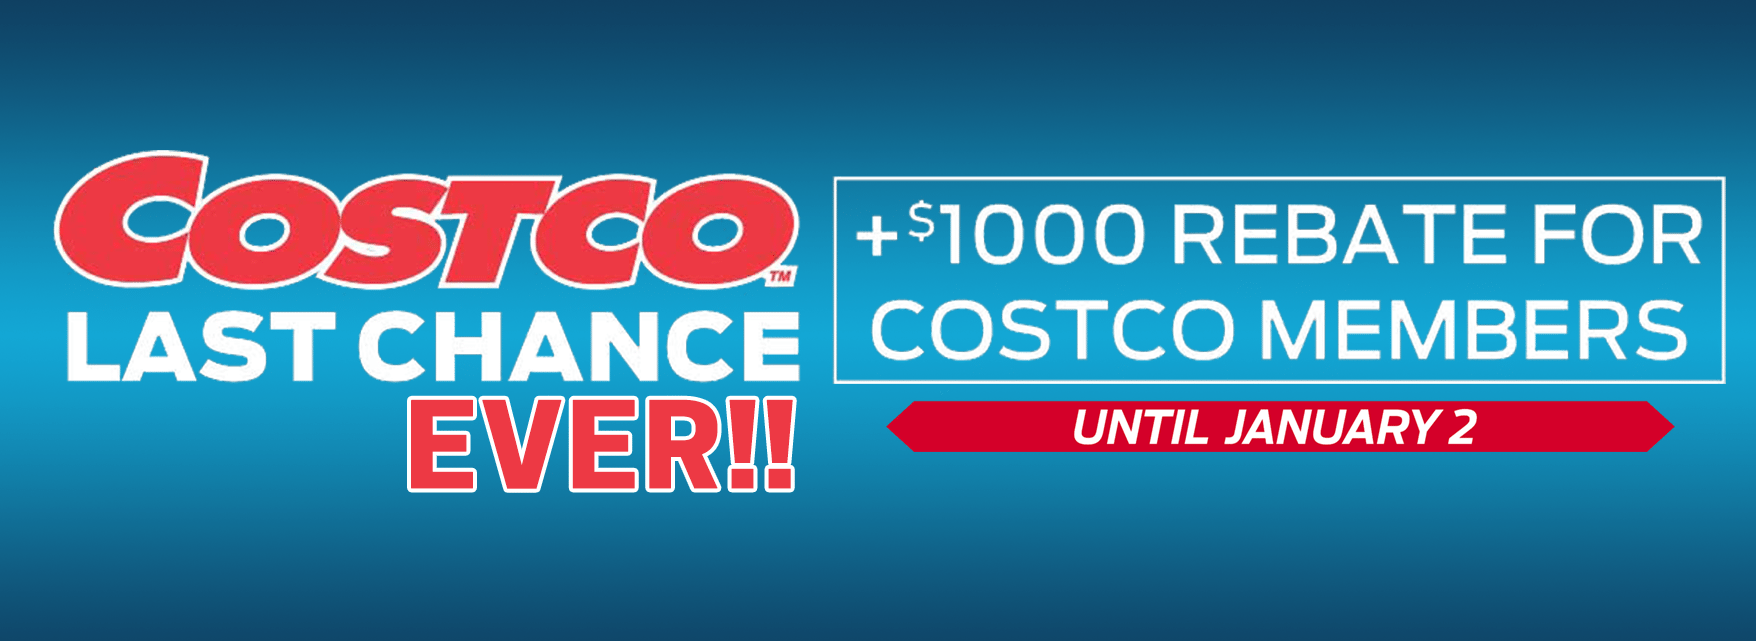 2018 Year End Clearout! Costco Members Save $1,000